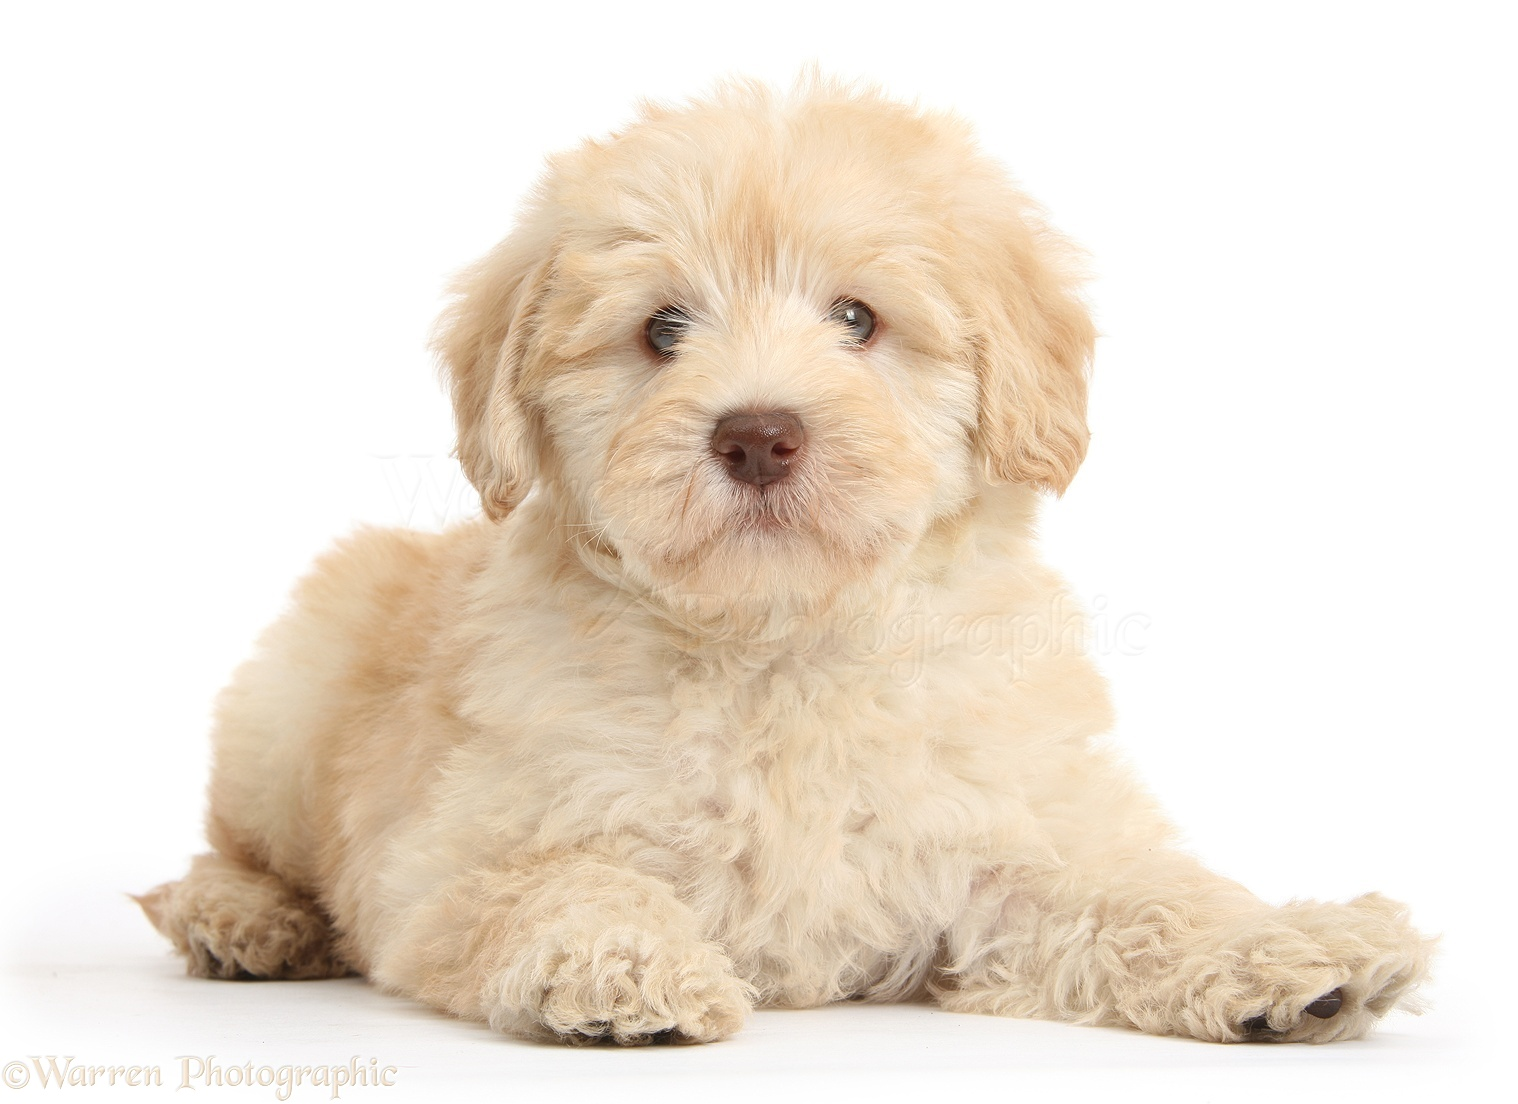 Dog Cute Toy Goldendoodle Puppy Photo Wp37997